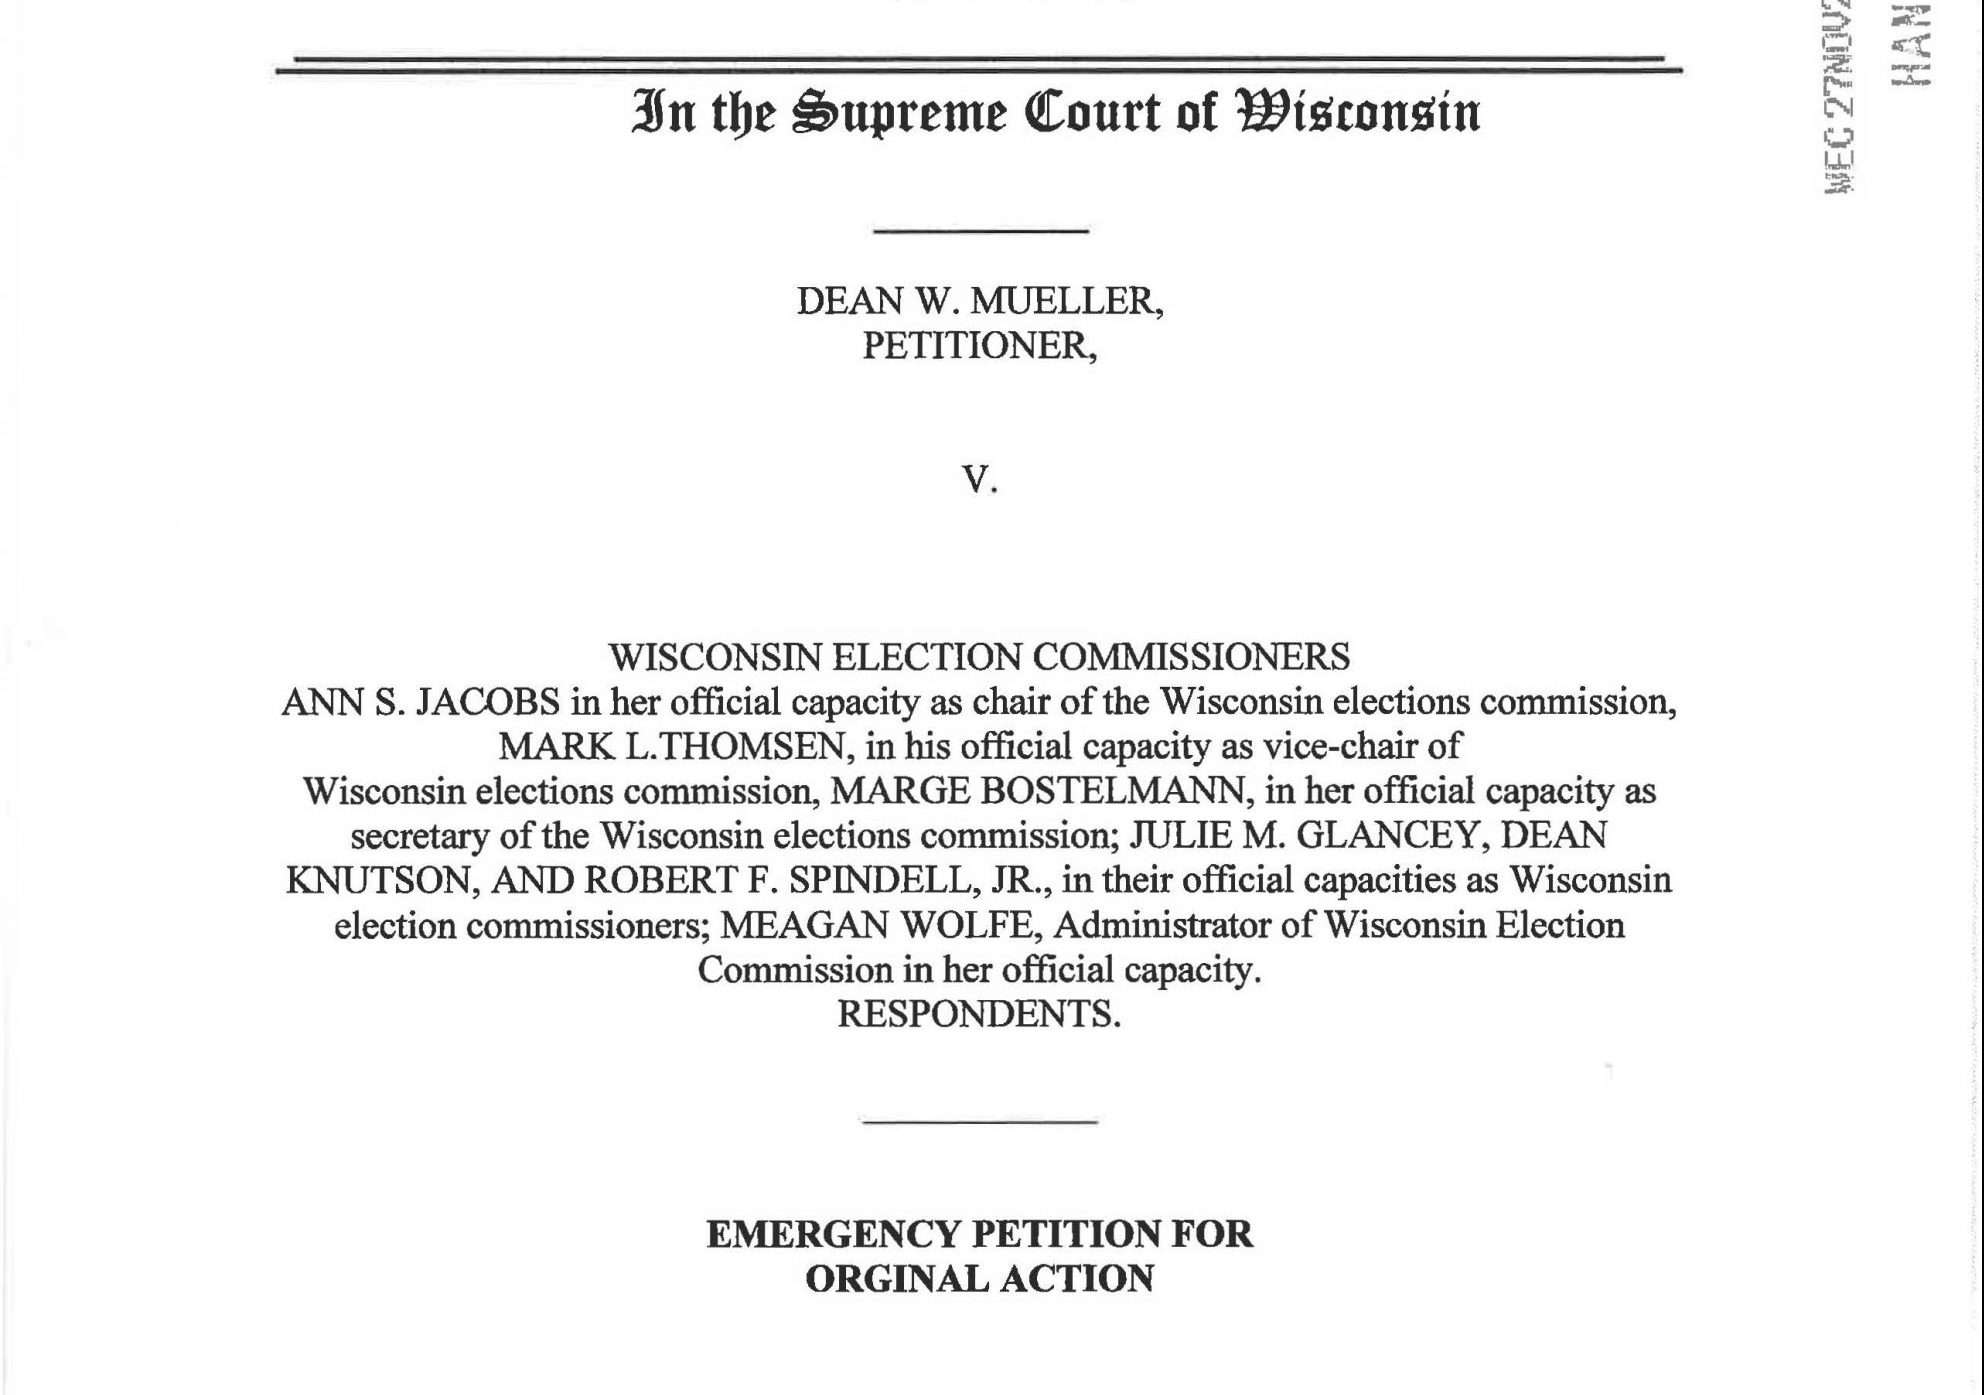 New Lawsuit Asks Wisconsin Supreme Court to Declare All Drop-Box Ballots Illegal and Block Certification